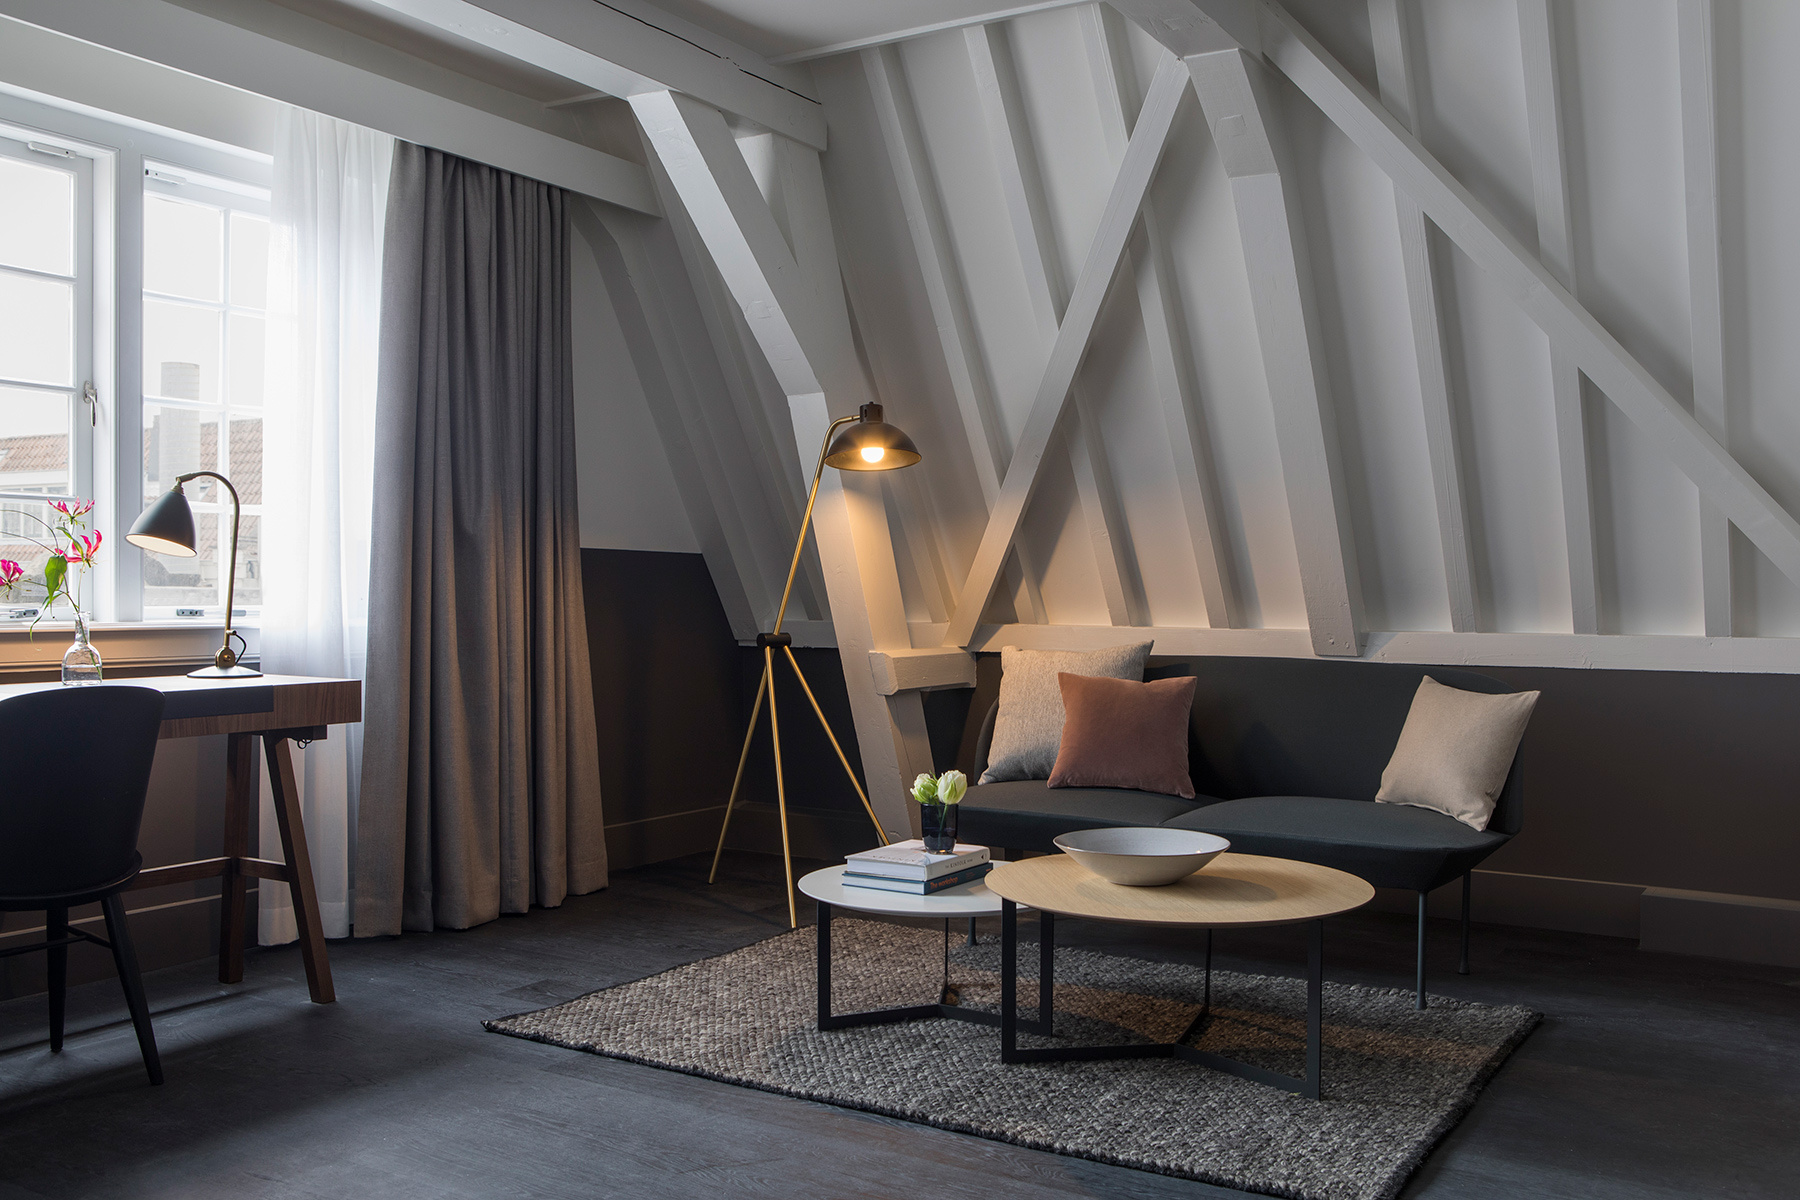 Une inspiration de tradition flamande amsterdam for Architecture flamande